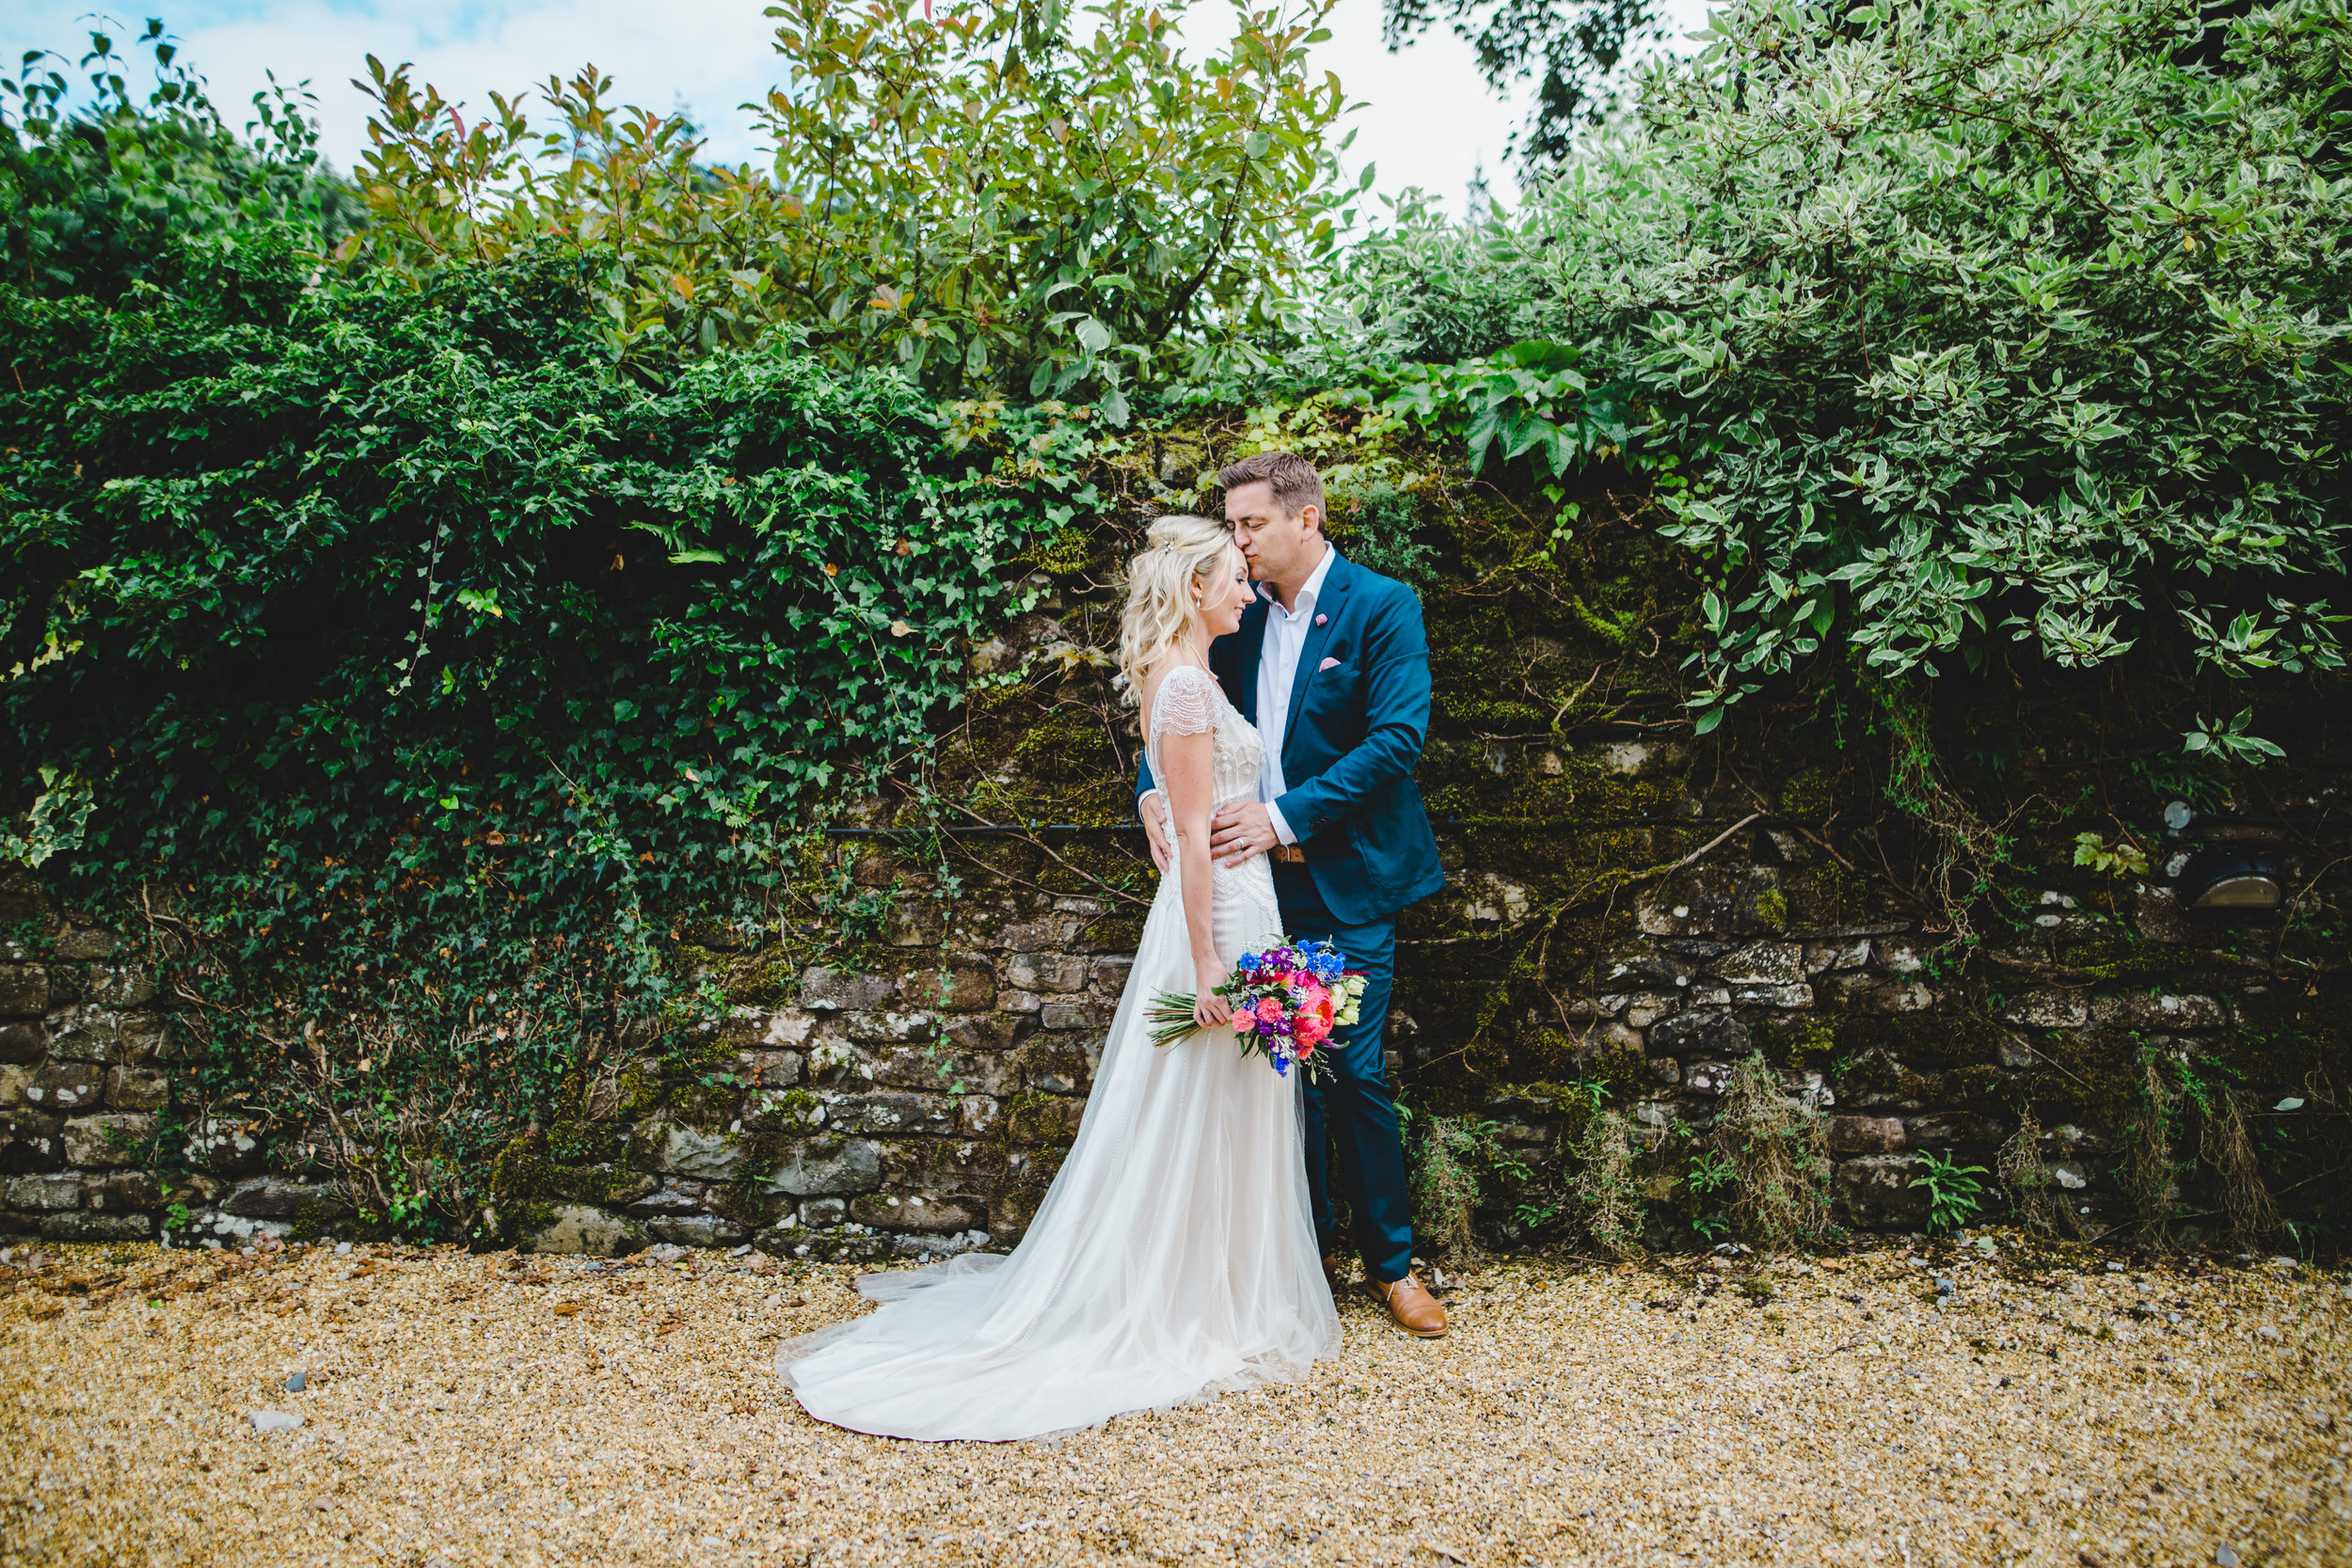 relaxed wedding pictures at Hipping Hall